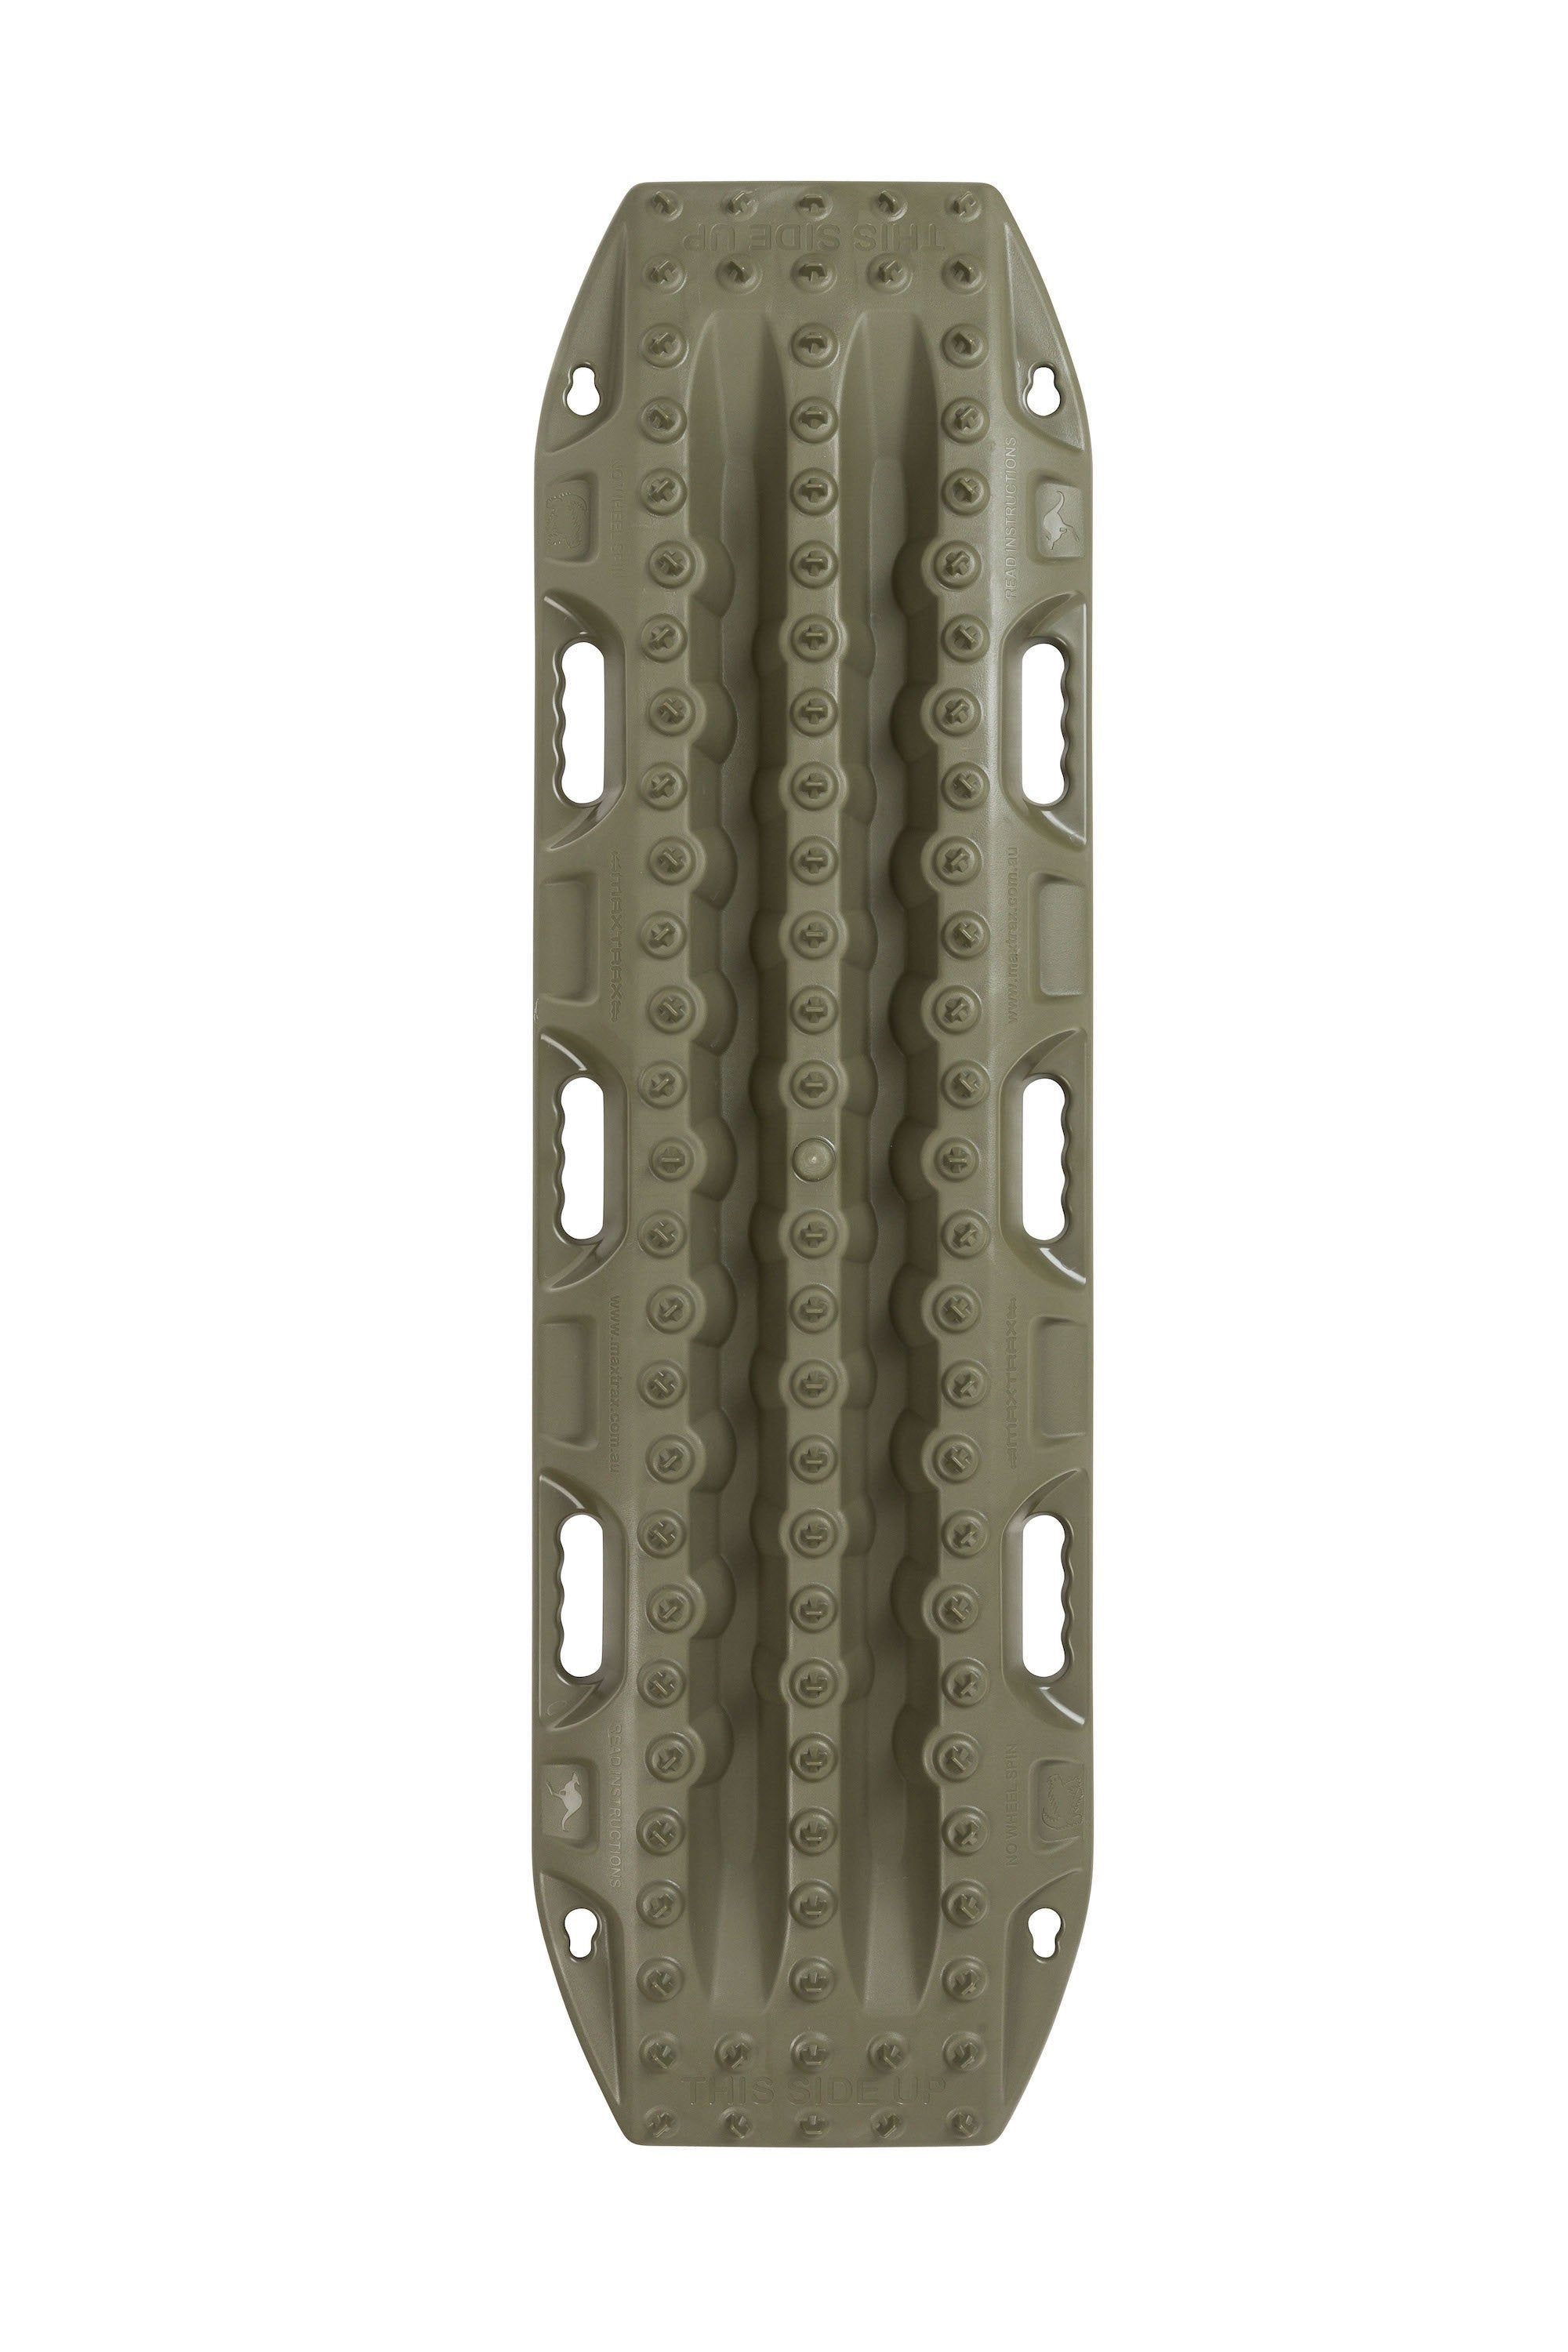 MAXTRAX MKII Olive Drab Recovery Boards  Recovery Gear MAXTRAX- Adventure Imports